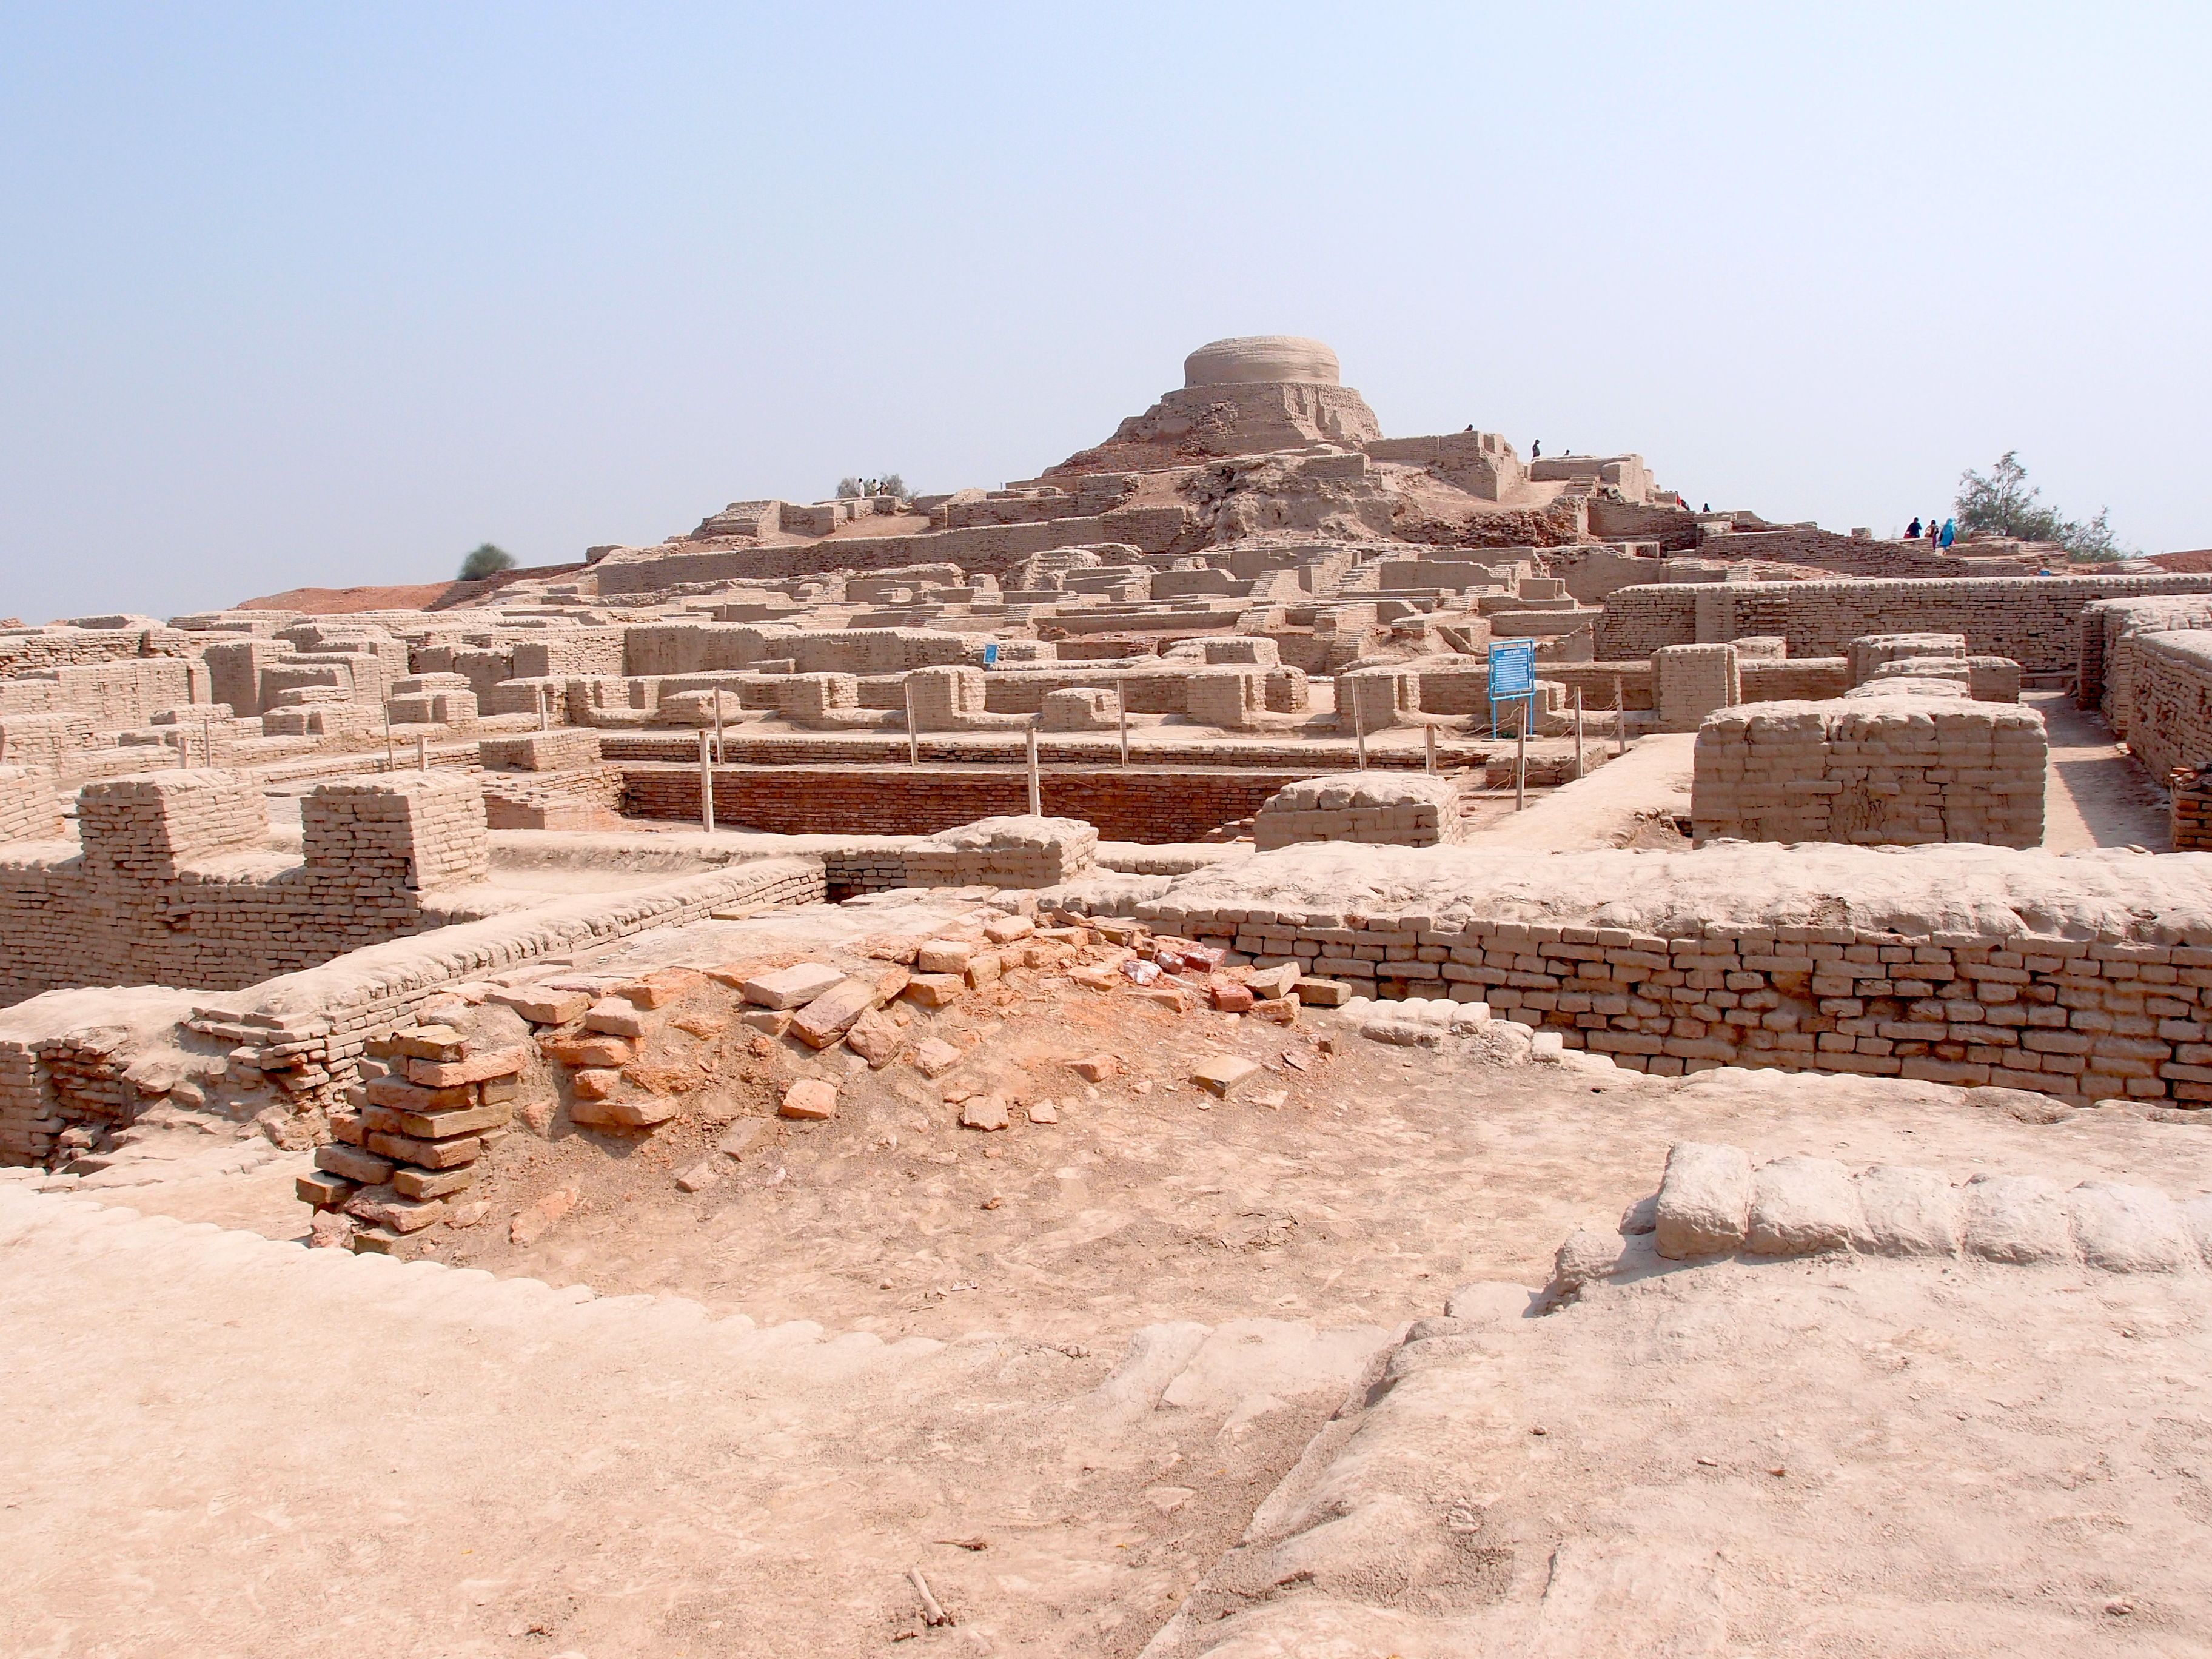 Indus valley cities fortress investment zodiac aerospace uk investment ltd